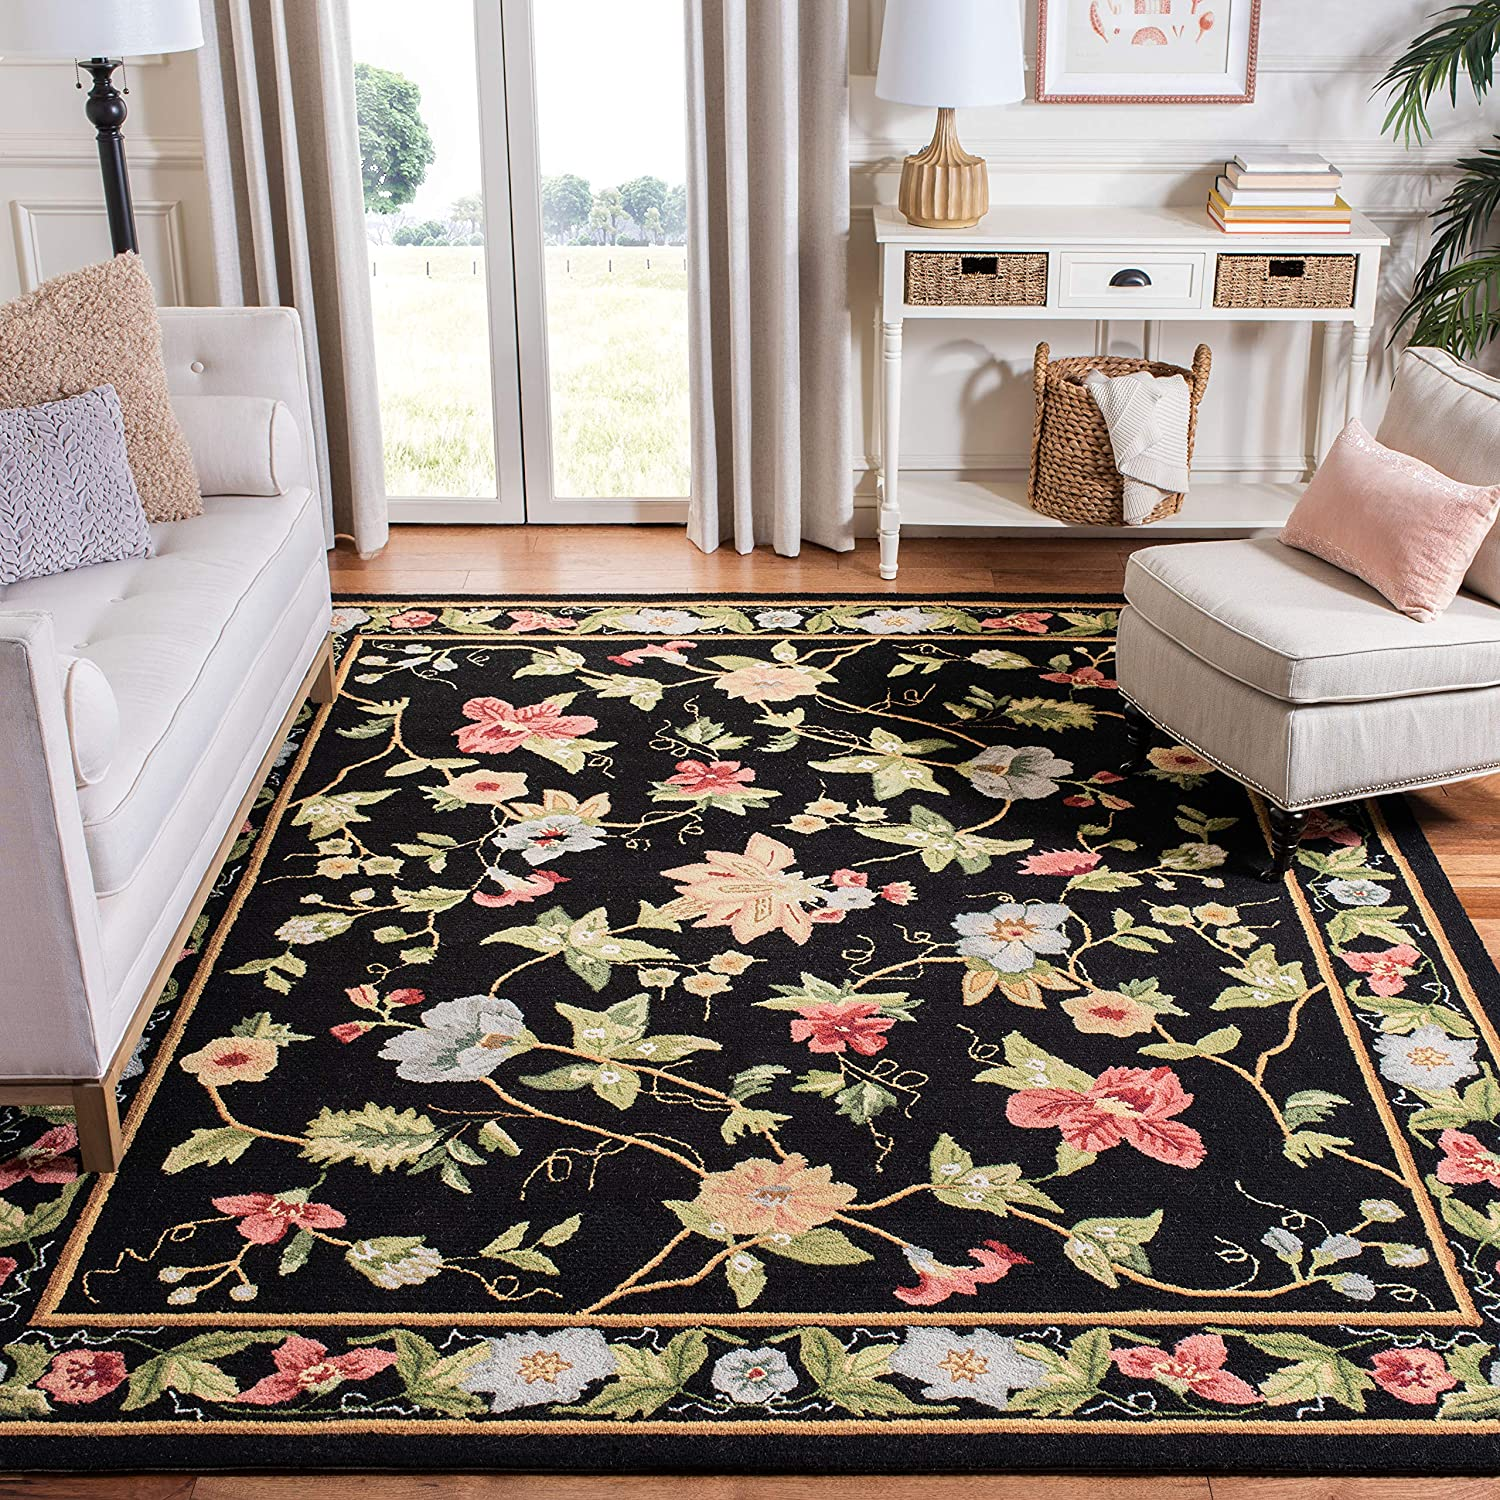 Safavieh Chelsea Collection HK311A Hand-Hooked Black Premium Wool Area Rug (6' x 9')